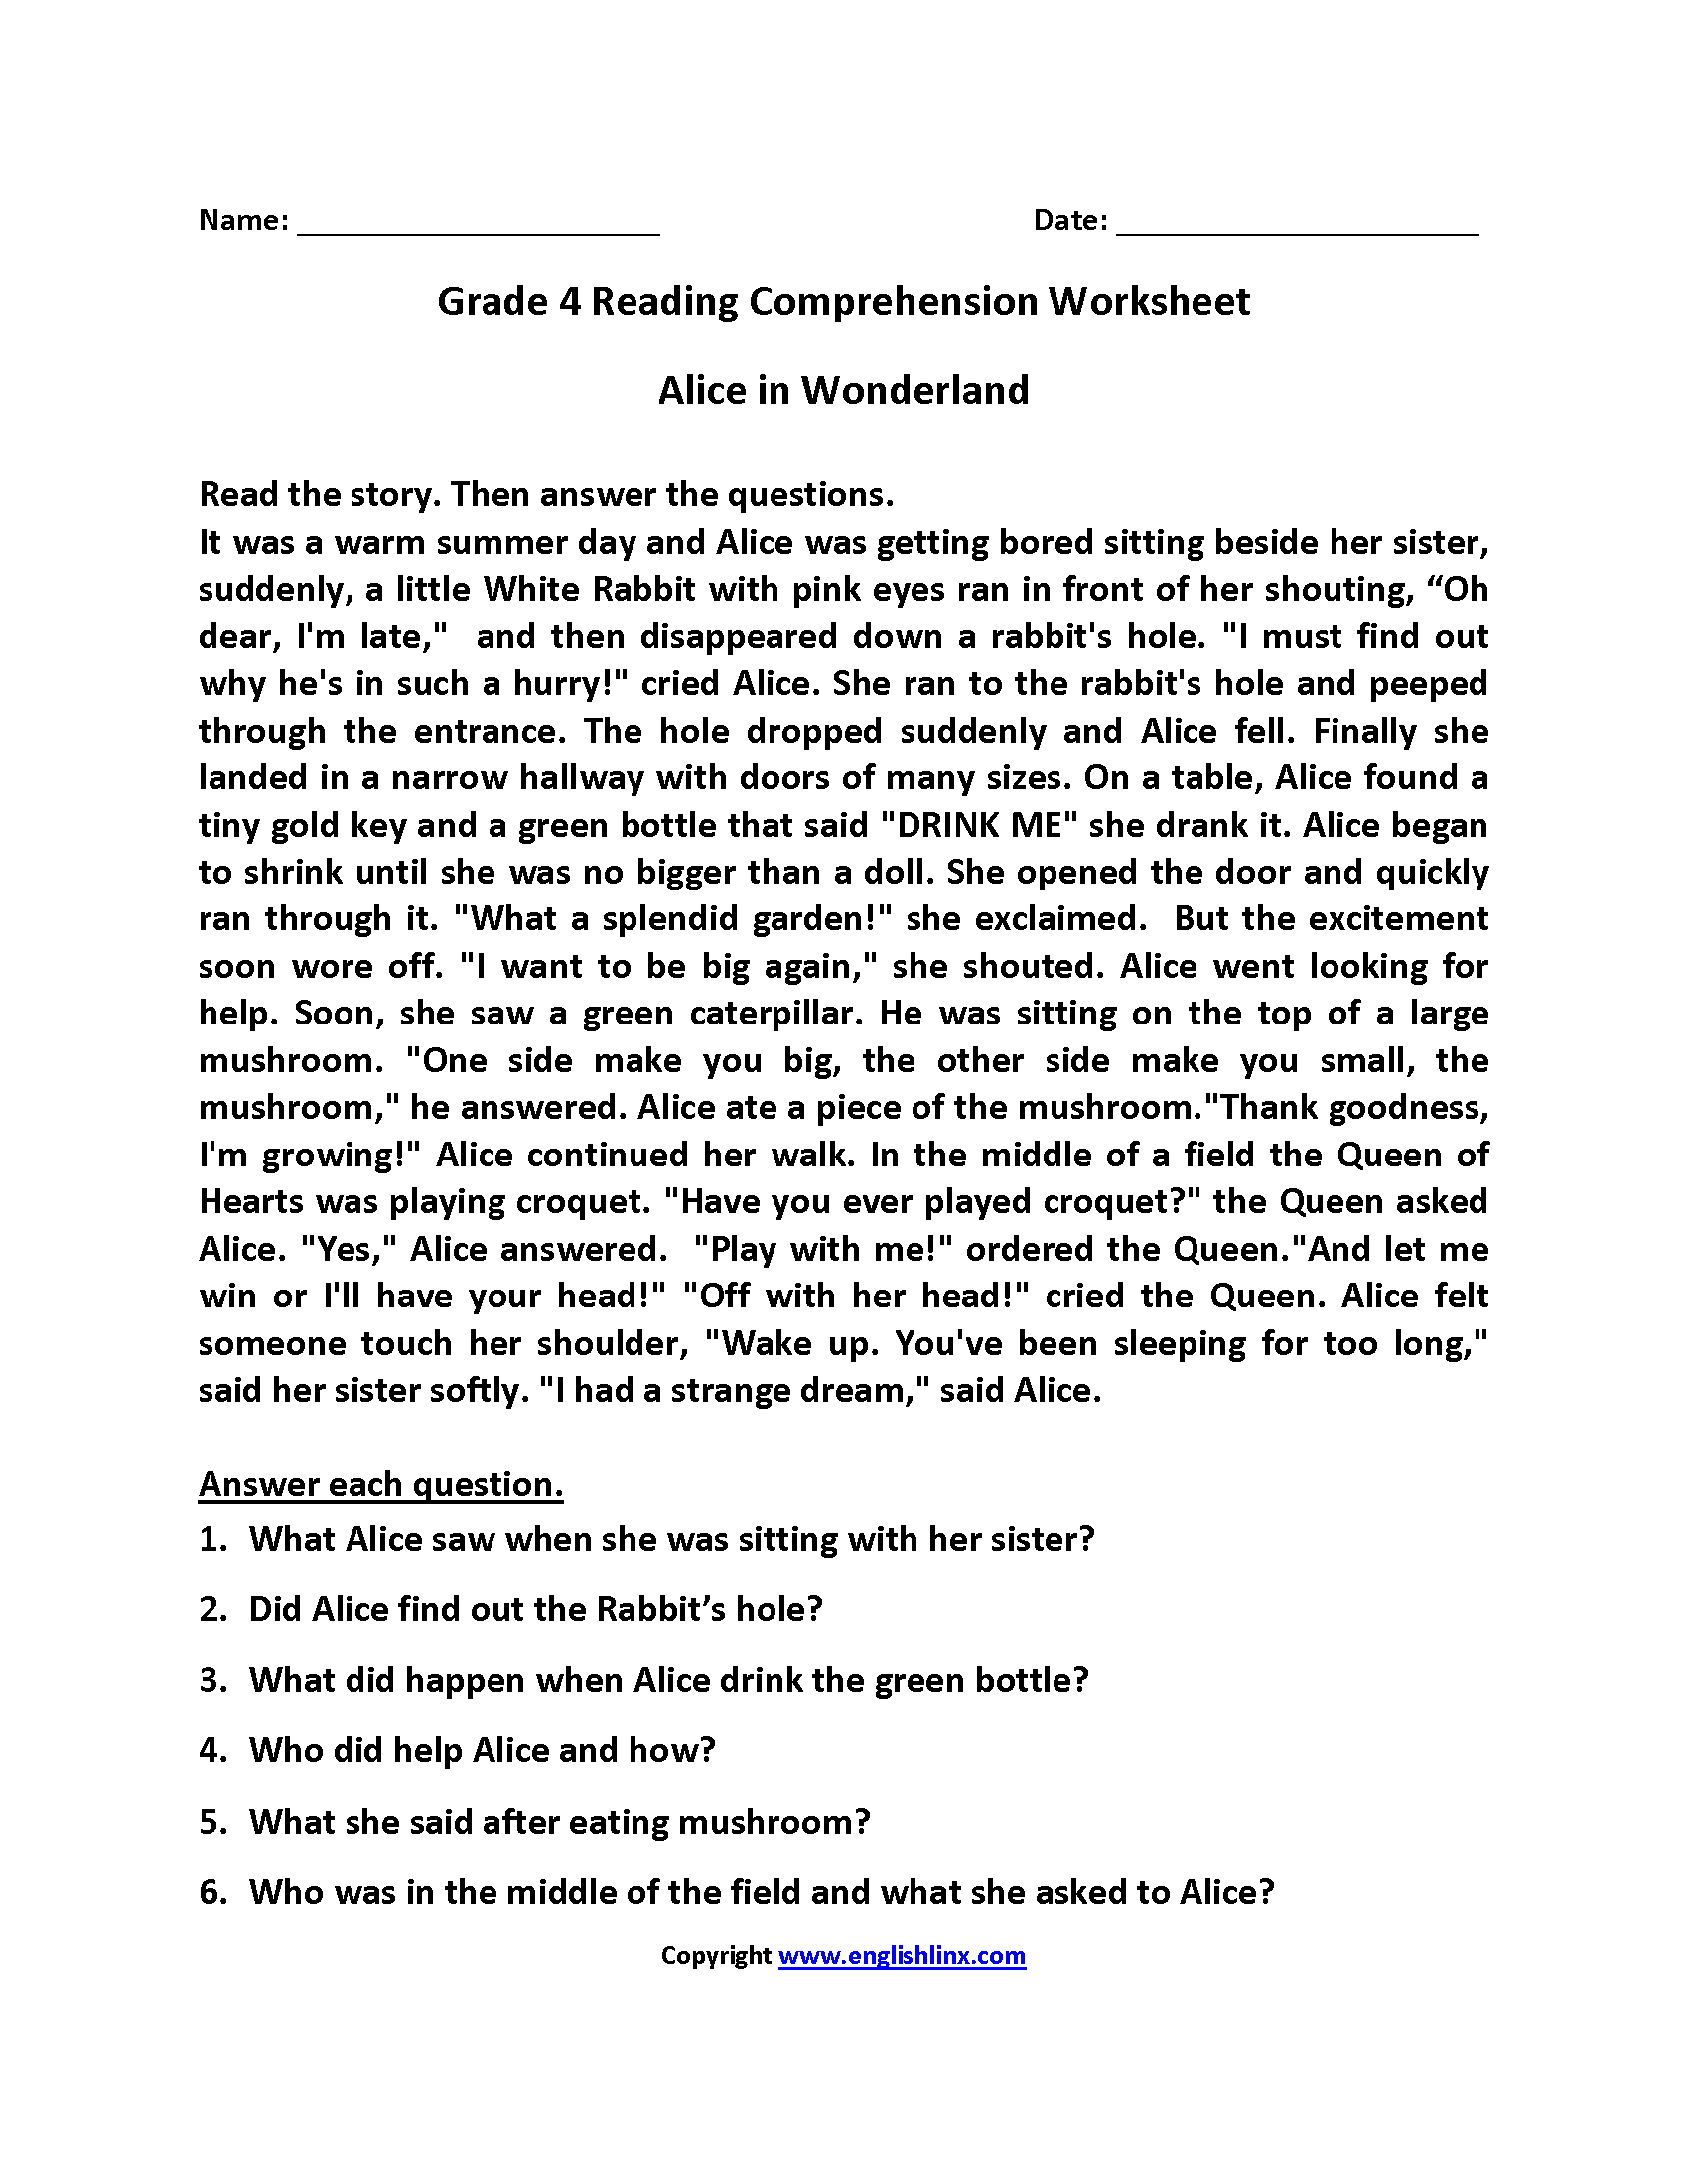 Worksheet Fourth Grade Reading Level reading worksheets fourth grade worksheets